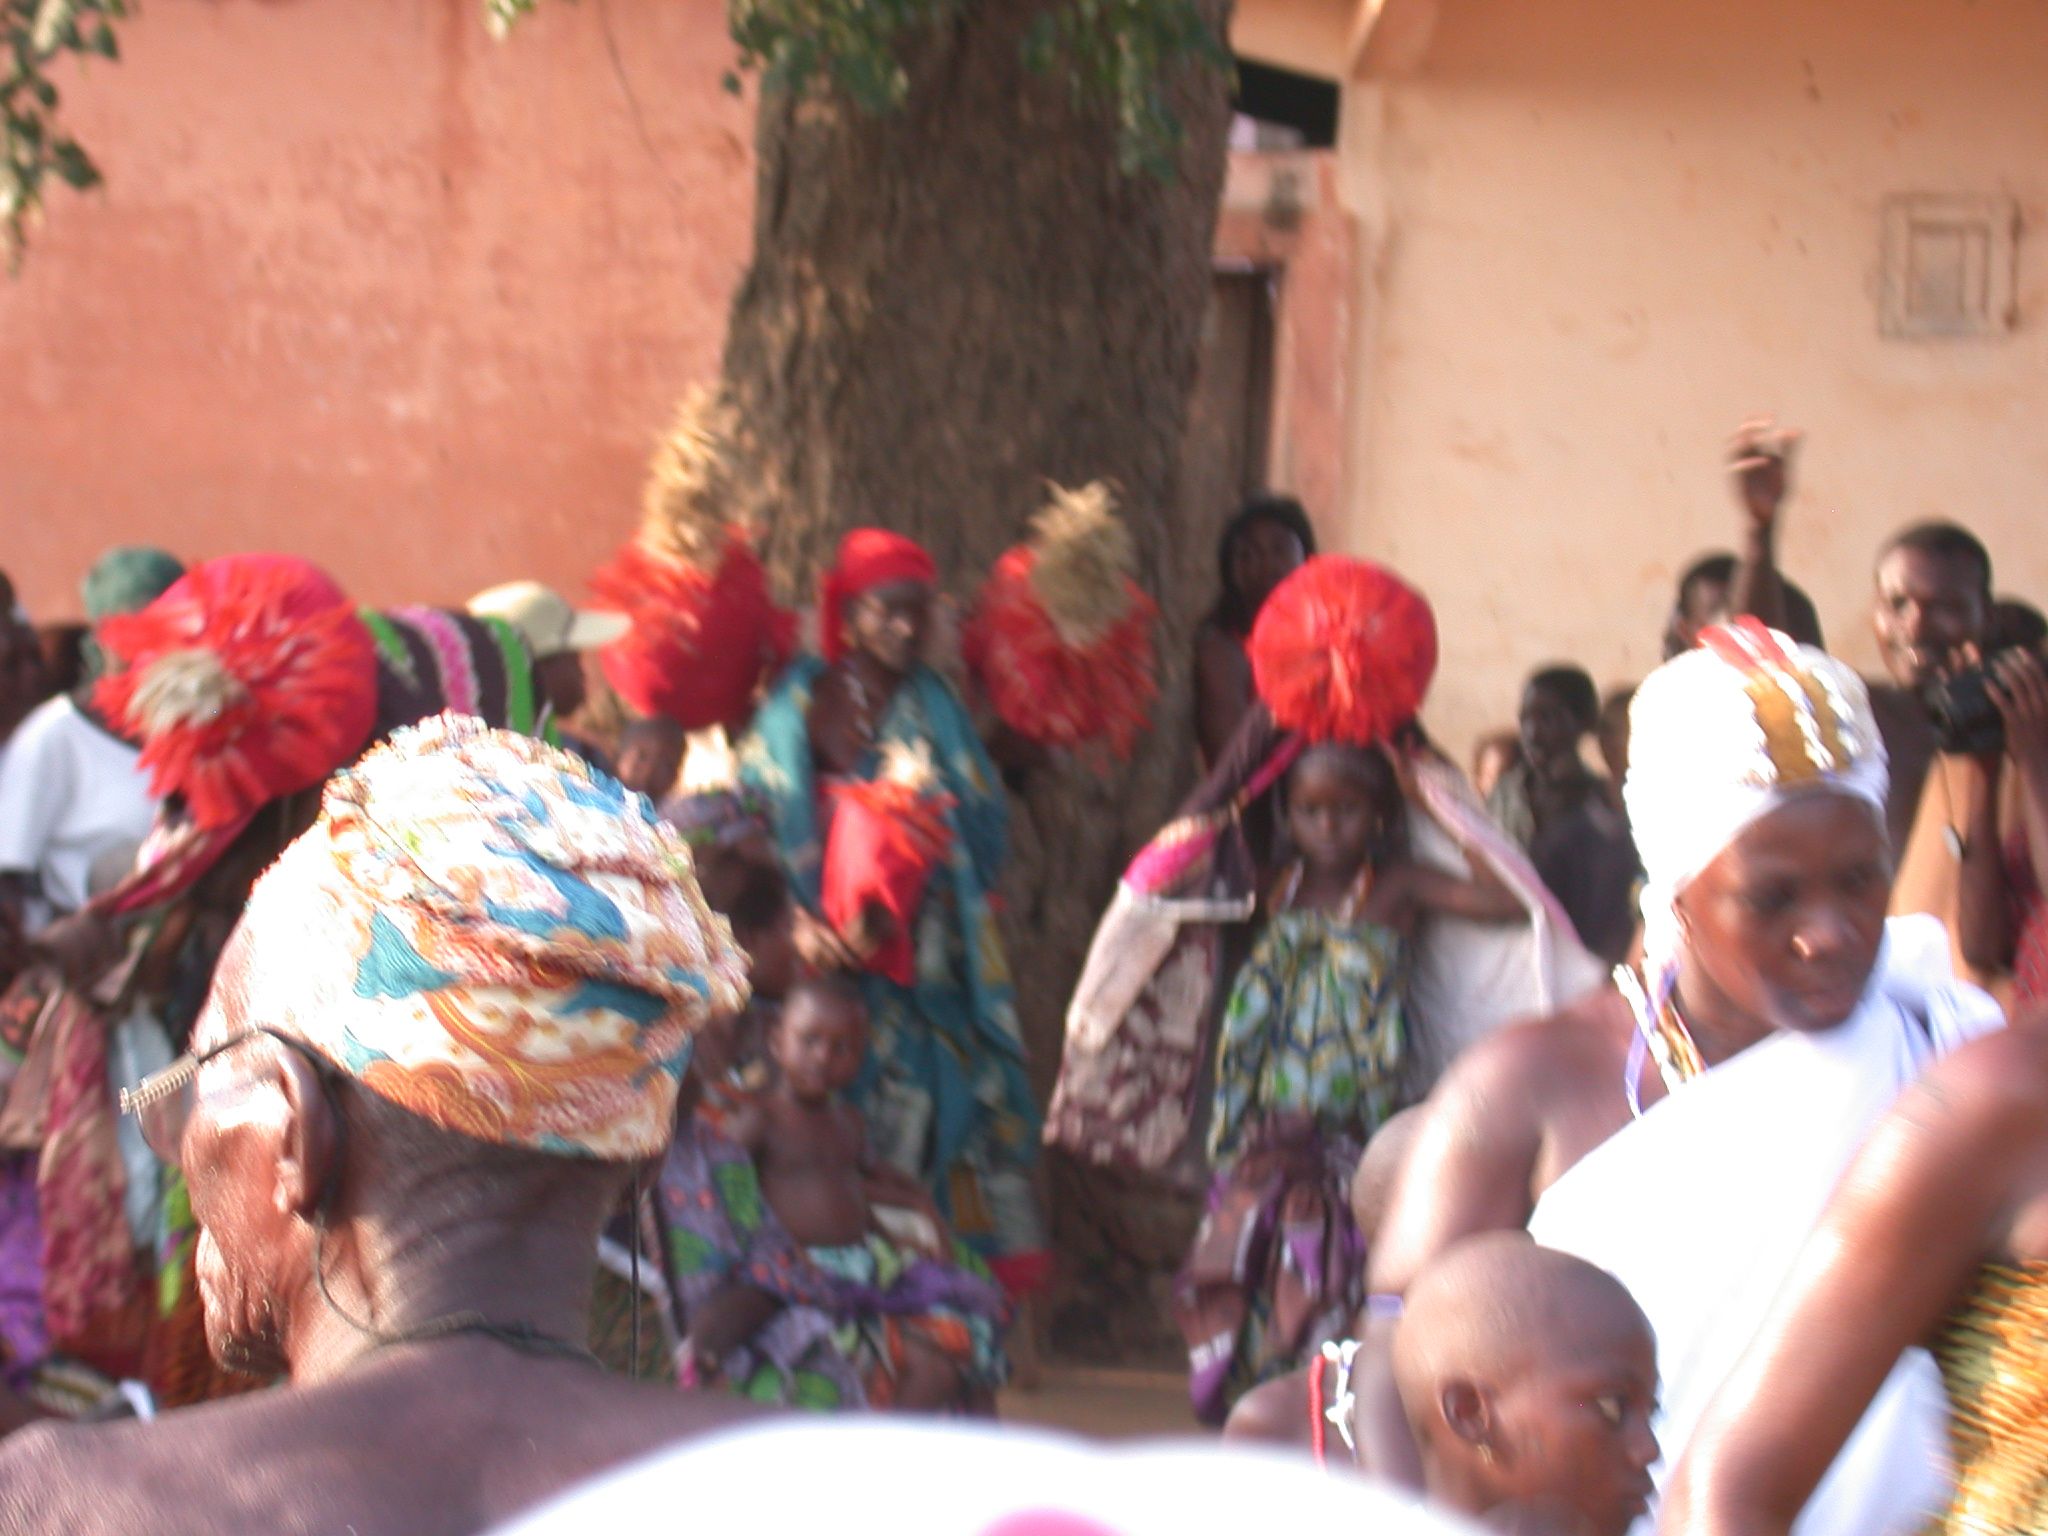 Dancing With Red Pompom-Like Decorations, Vodun Ritual, Ouidah, Benin